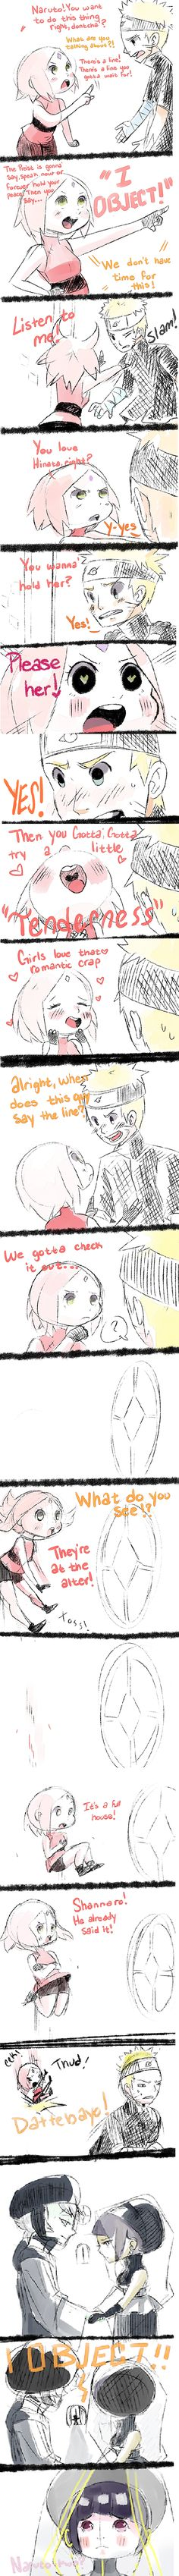 If that didn't happen in die last movie i'm pissed. Sakura is the cutest thing ever. She is Narutos best Bro.